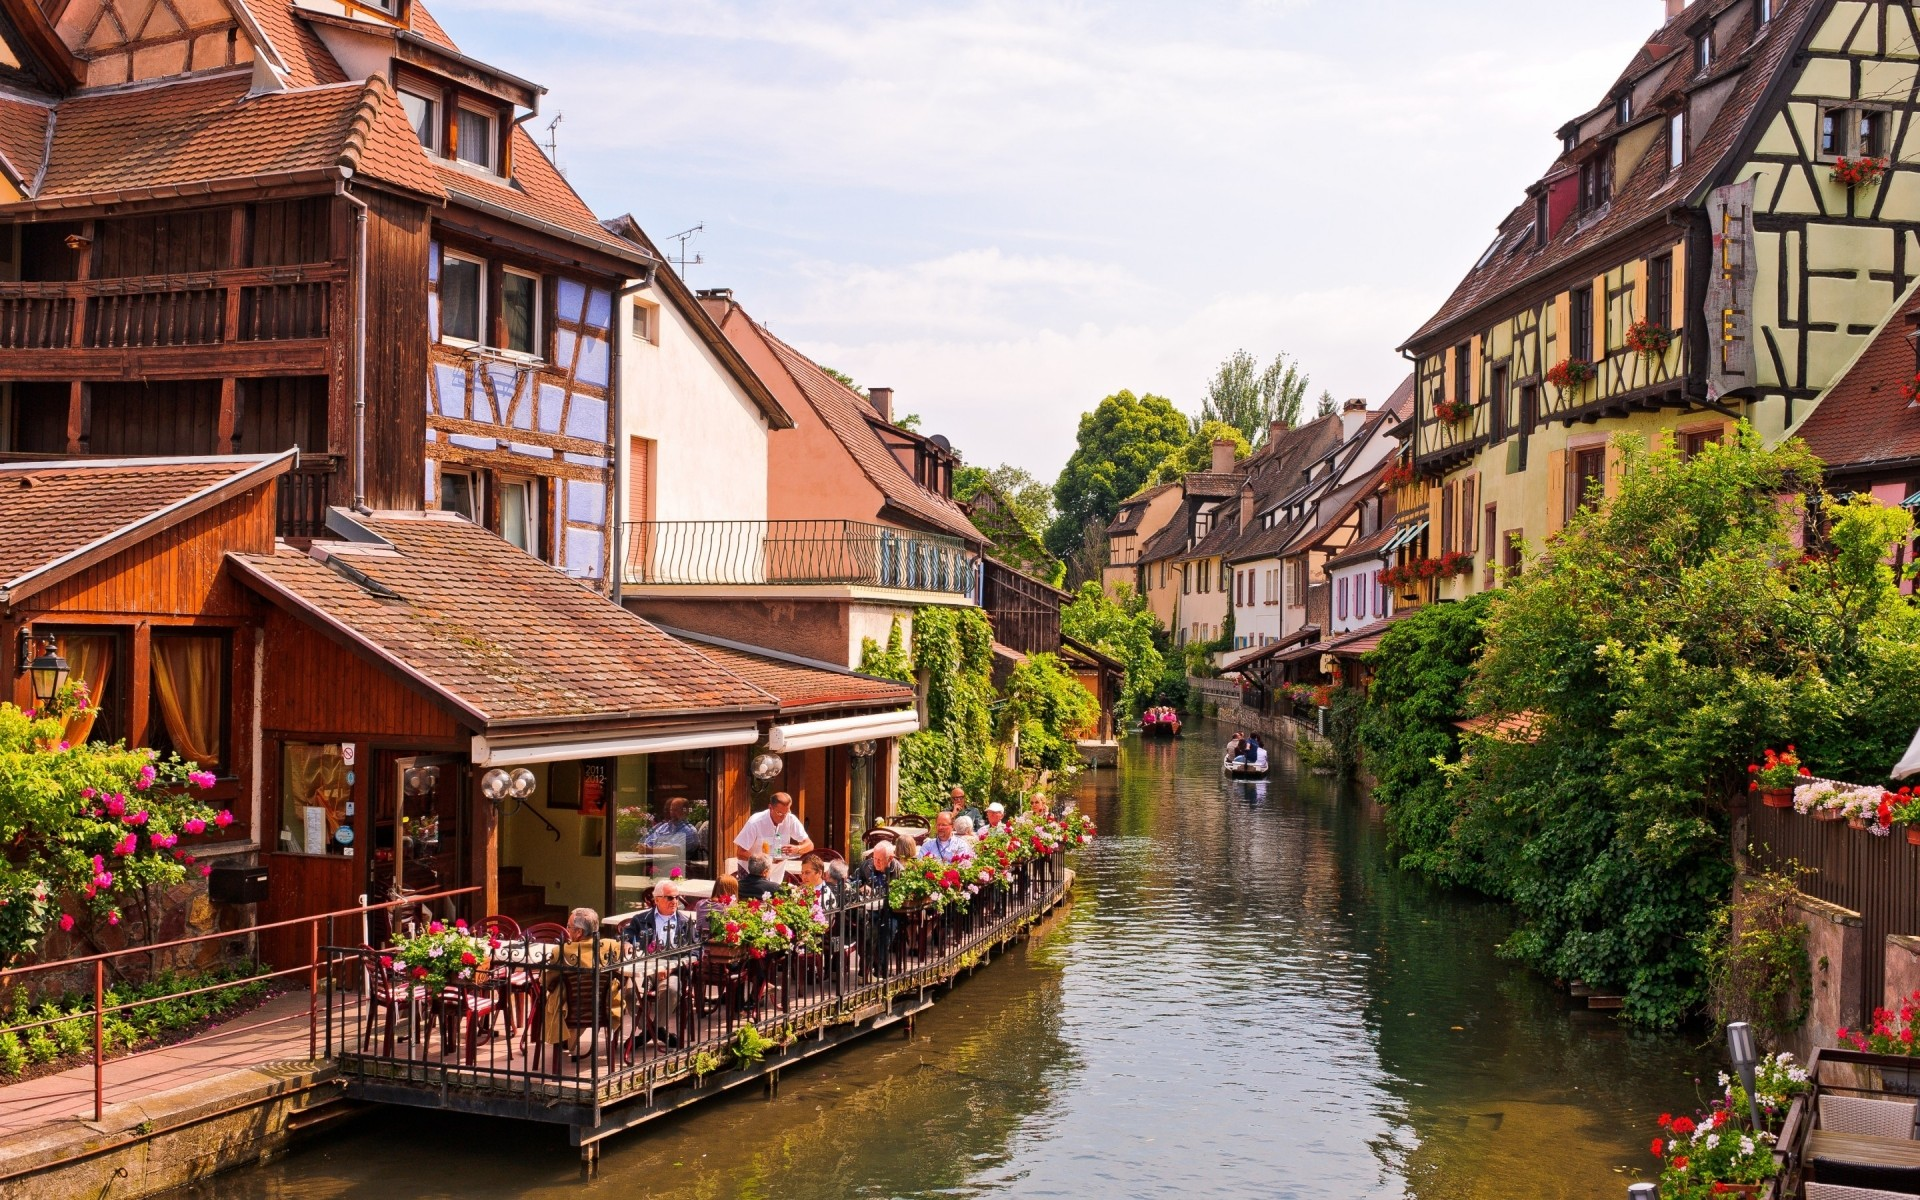 france architecture house travel building tourism town canal water street city river traditional old outdoors tourist vacation urban colmar alsace landscape